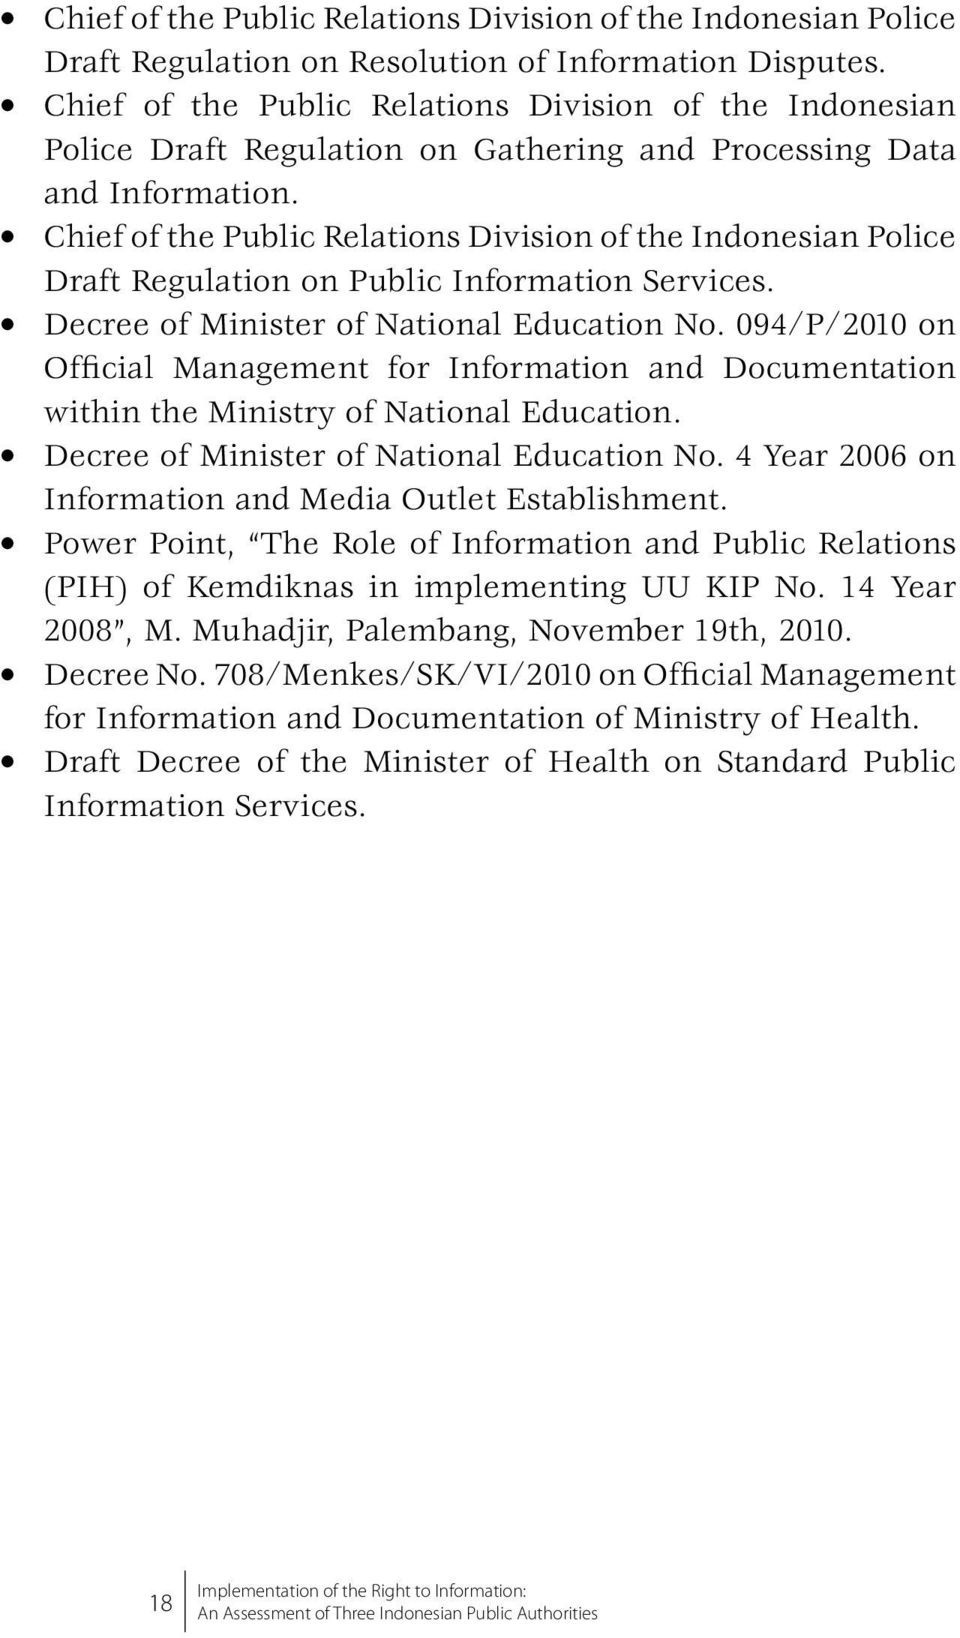 Chief of the Public Relations Division of the Indonesian Police Draft Regulation on Public Information Services. Decree of Minister of National Education No.